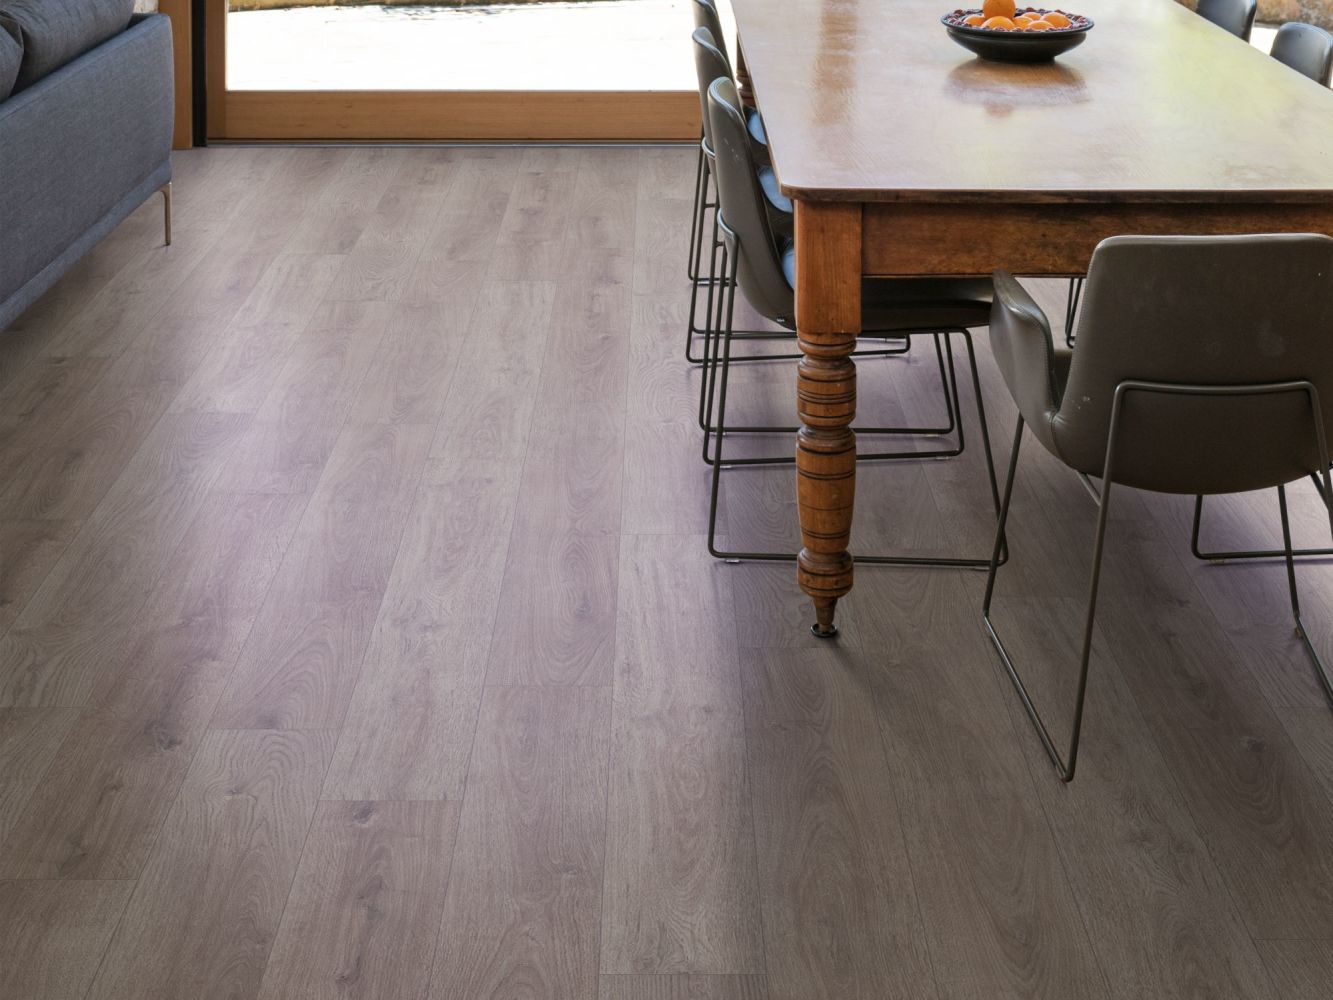 Shaw Floors Resilient Residential Distinction Plus Waxed Oak 05128_2045V